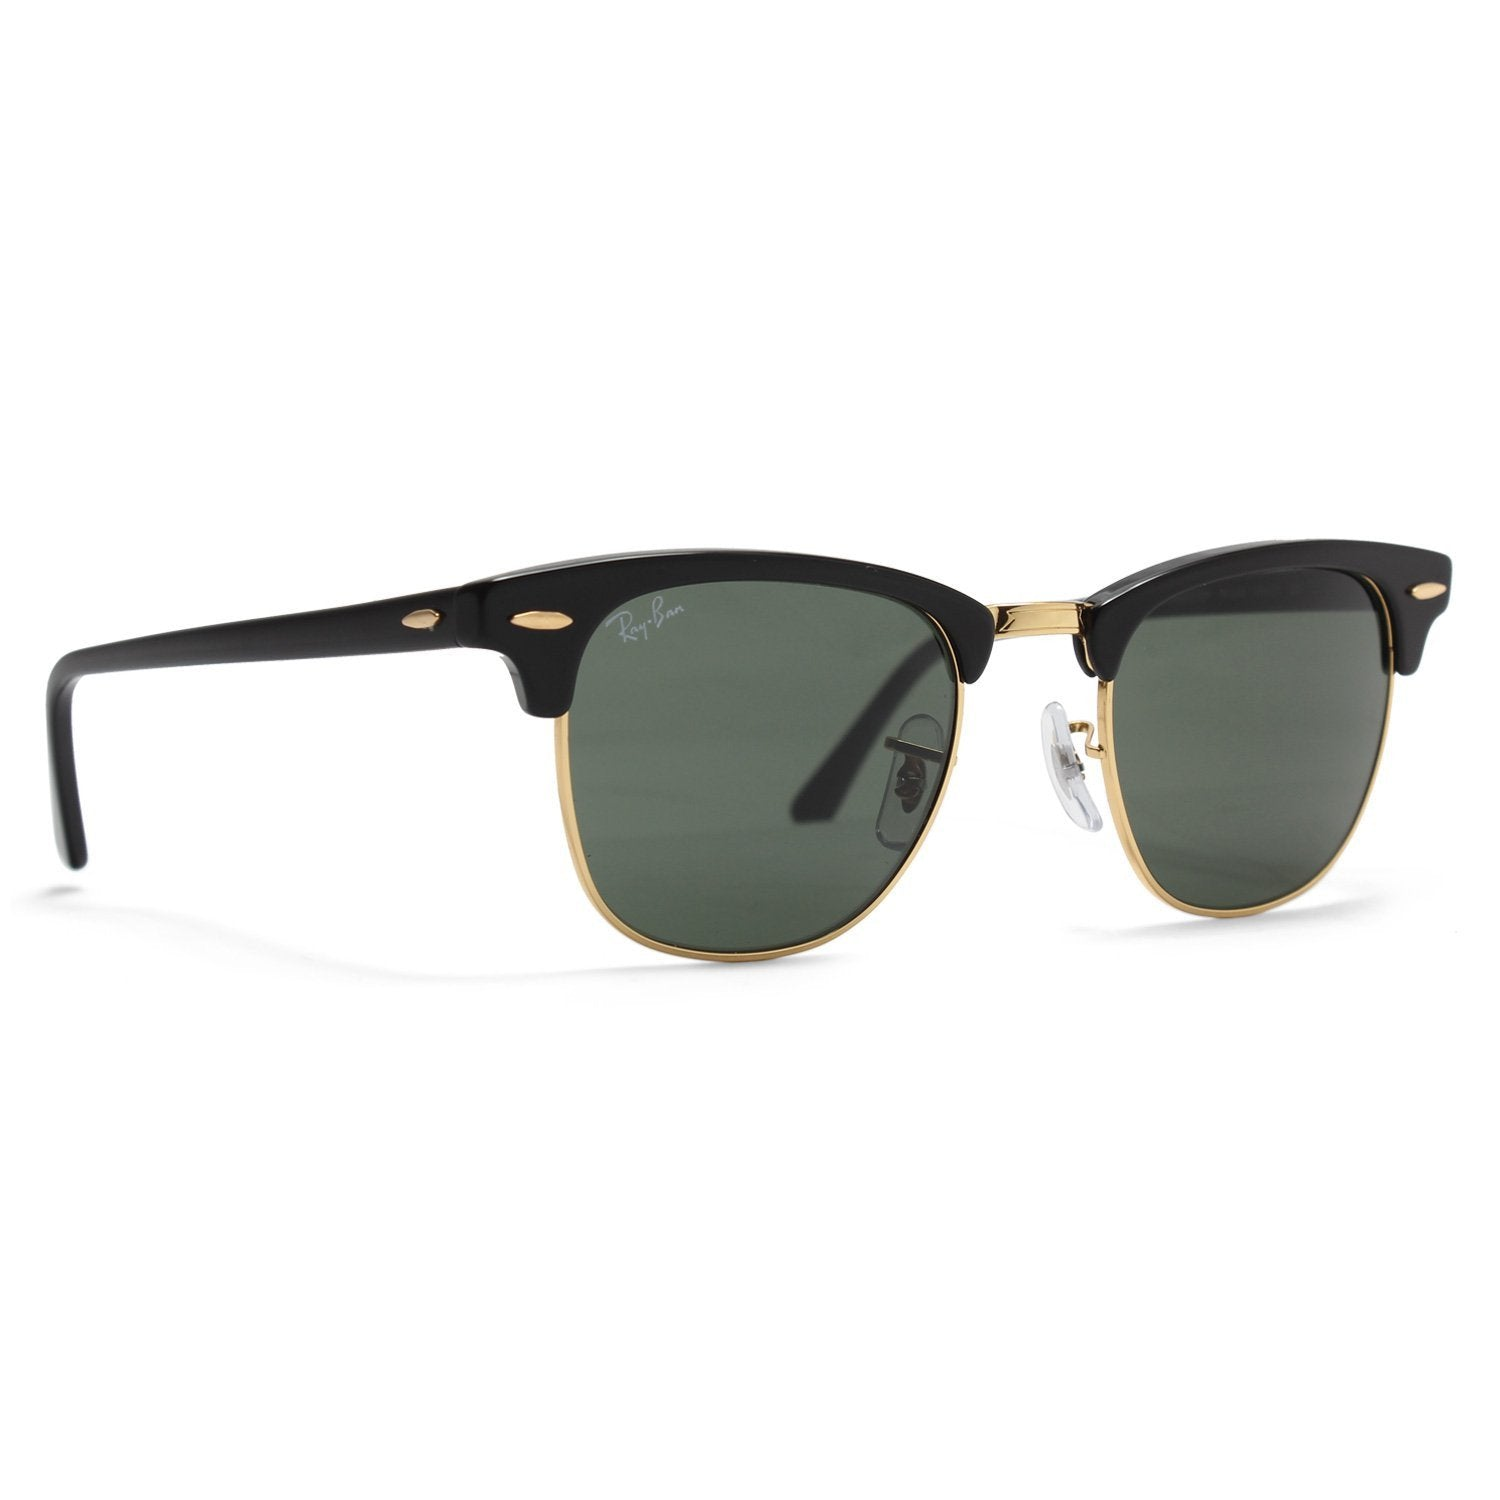 Clubmaster 49mm Rb3016 Sunglasses